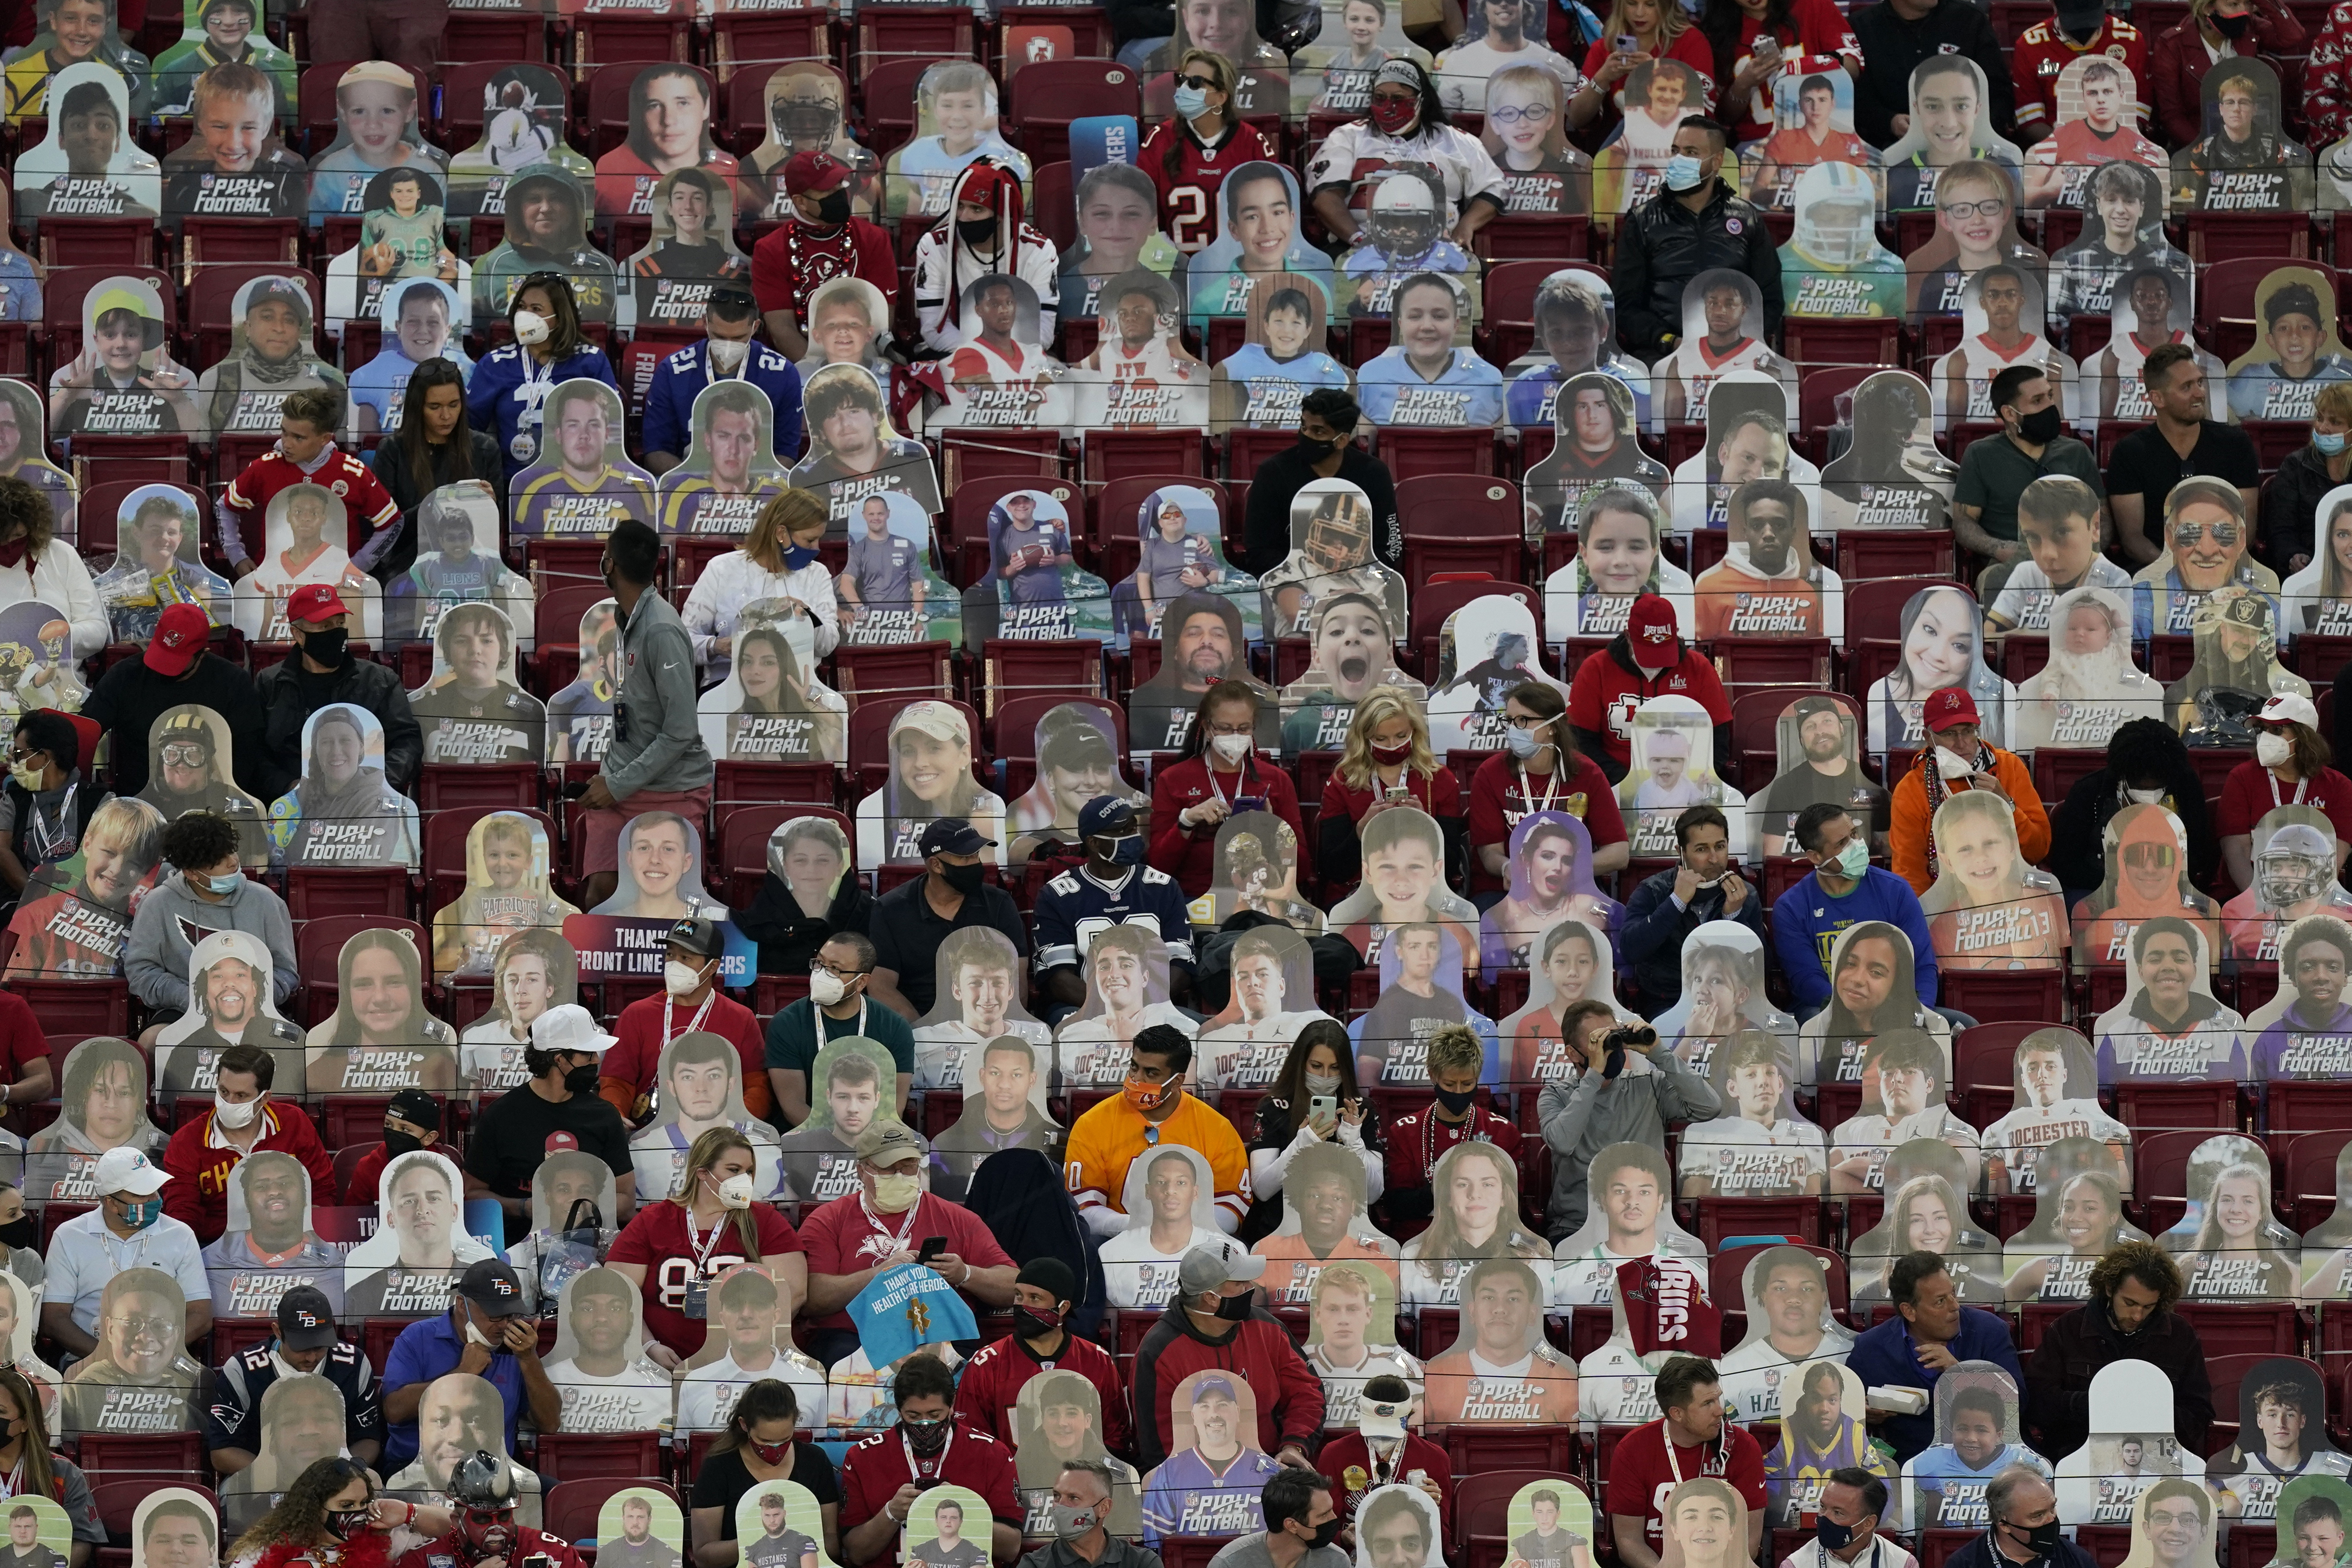 Fans sit among cardboard cutouts before the NFL Super Bowl 55 football game between the Kansas City Chiefs and Tampa Bay Buccaneers, Sunday, Feb. 7, 2021, in Tampa, Fla.